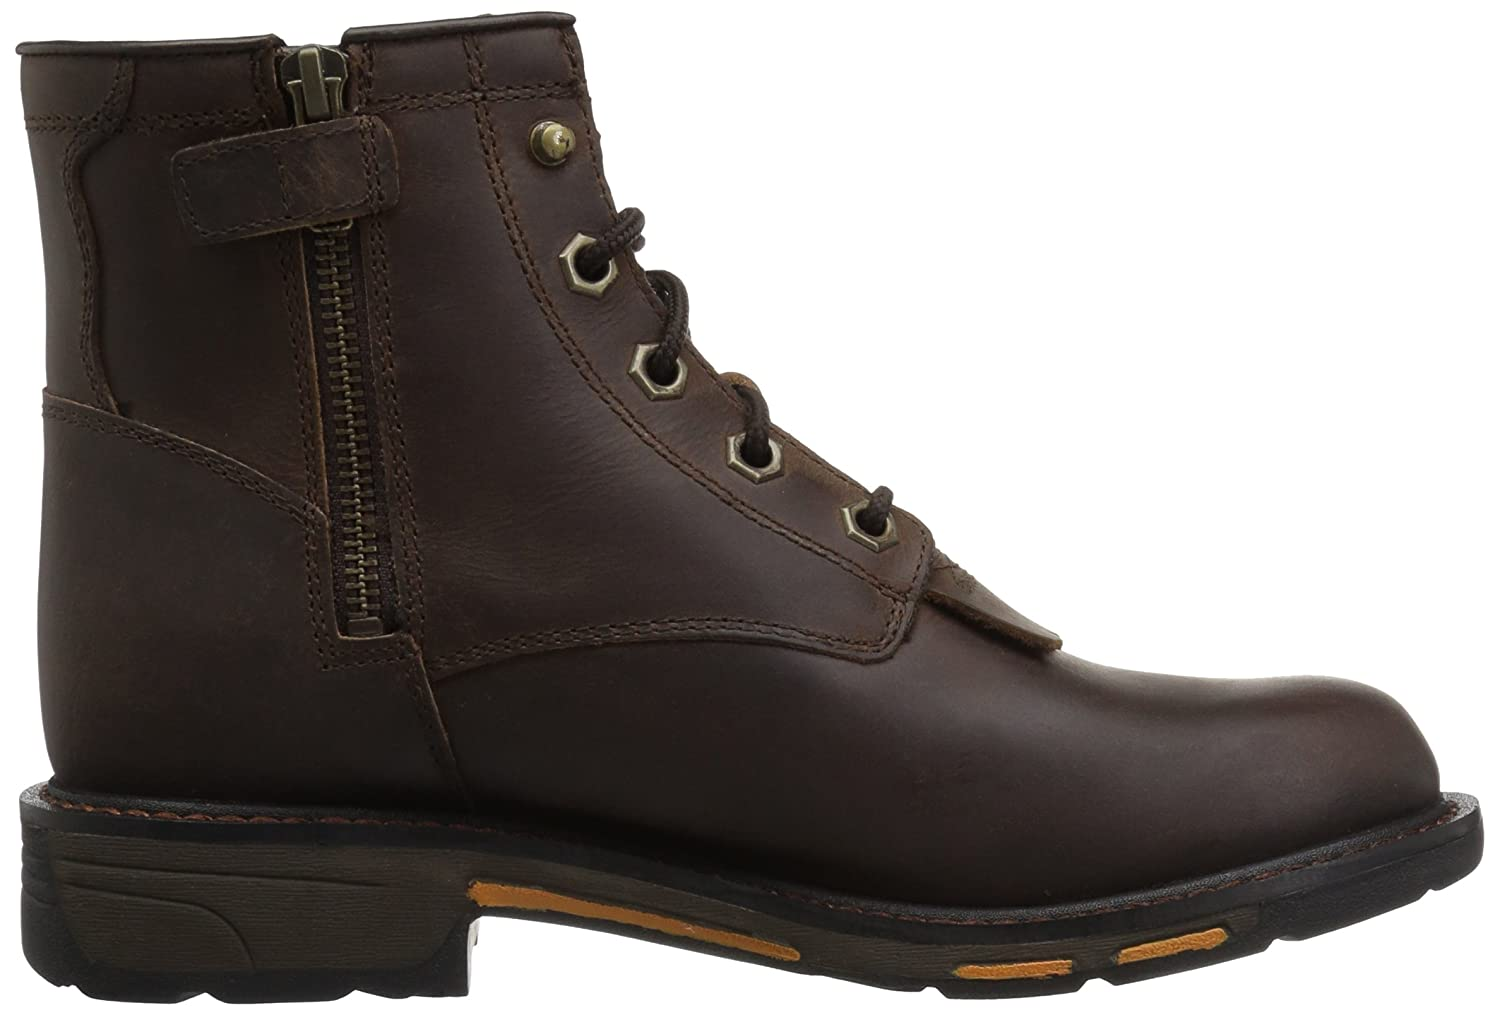 Ariat - Unisex-Kind Unisex-Kind Unisex-Kind Workhog Lacer Western Arbeitsschuhe 4e40f3